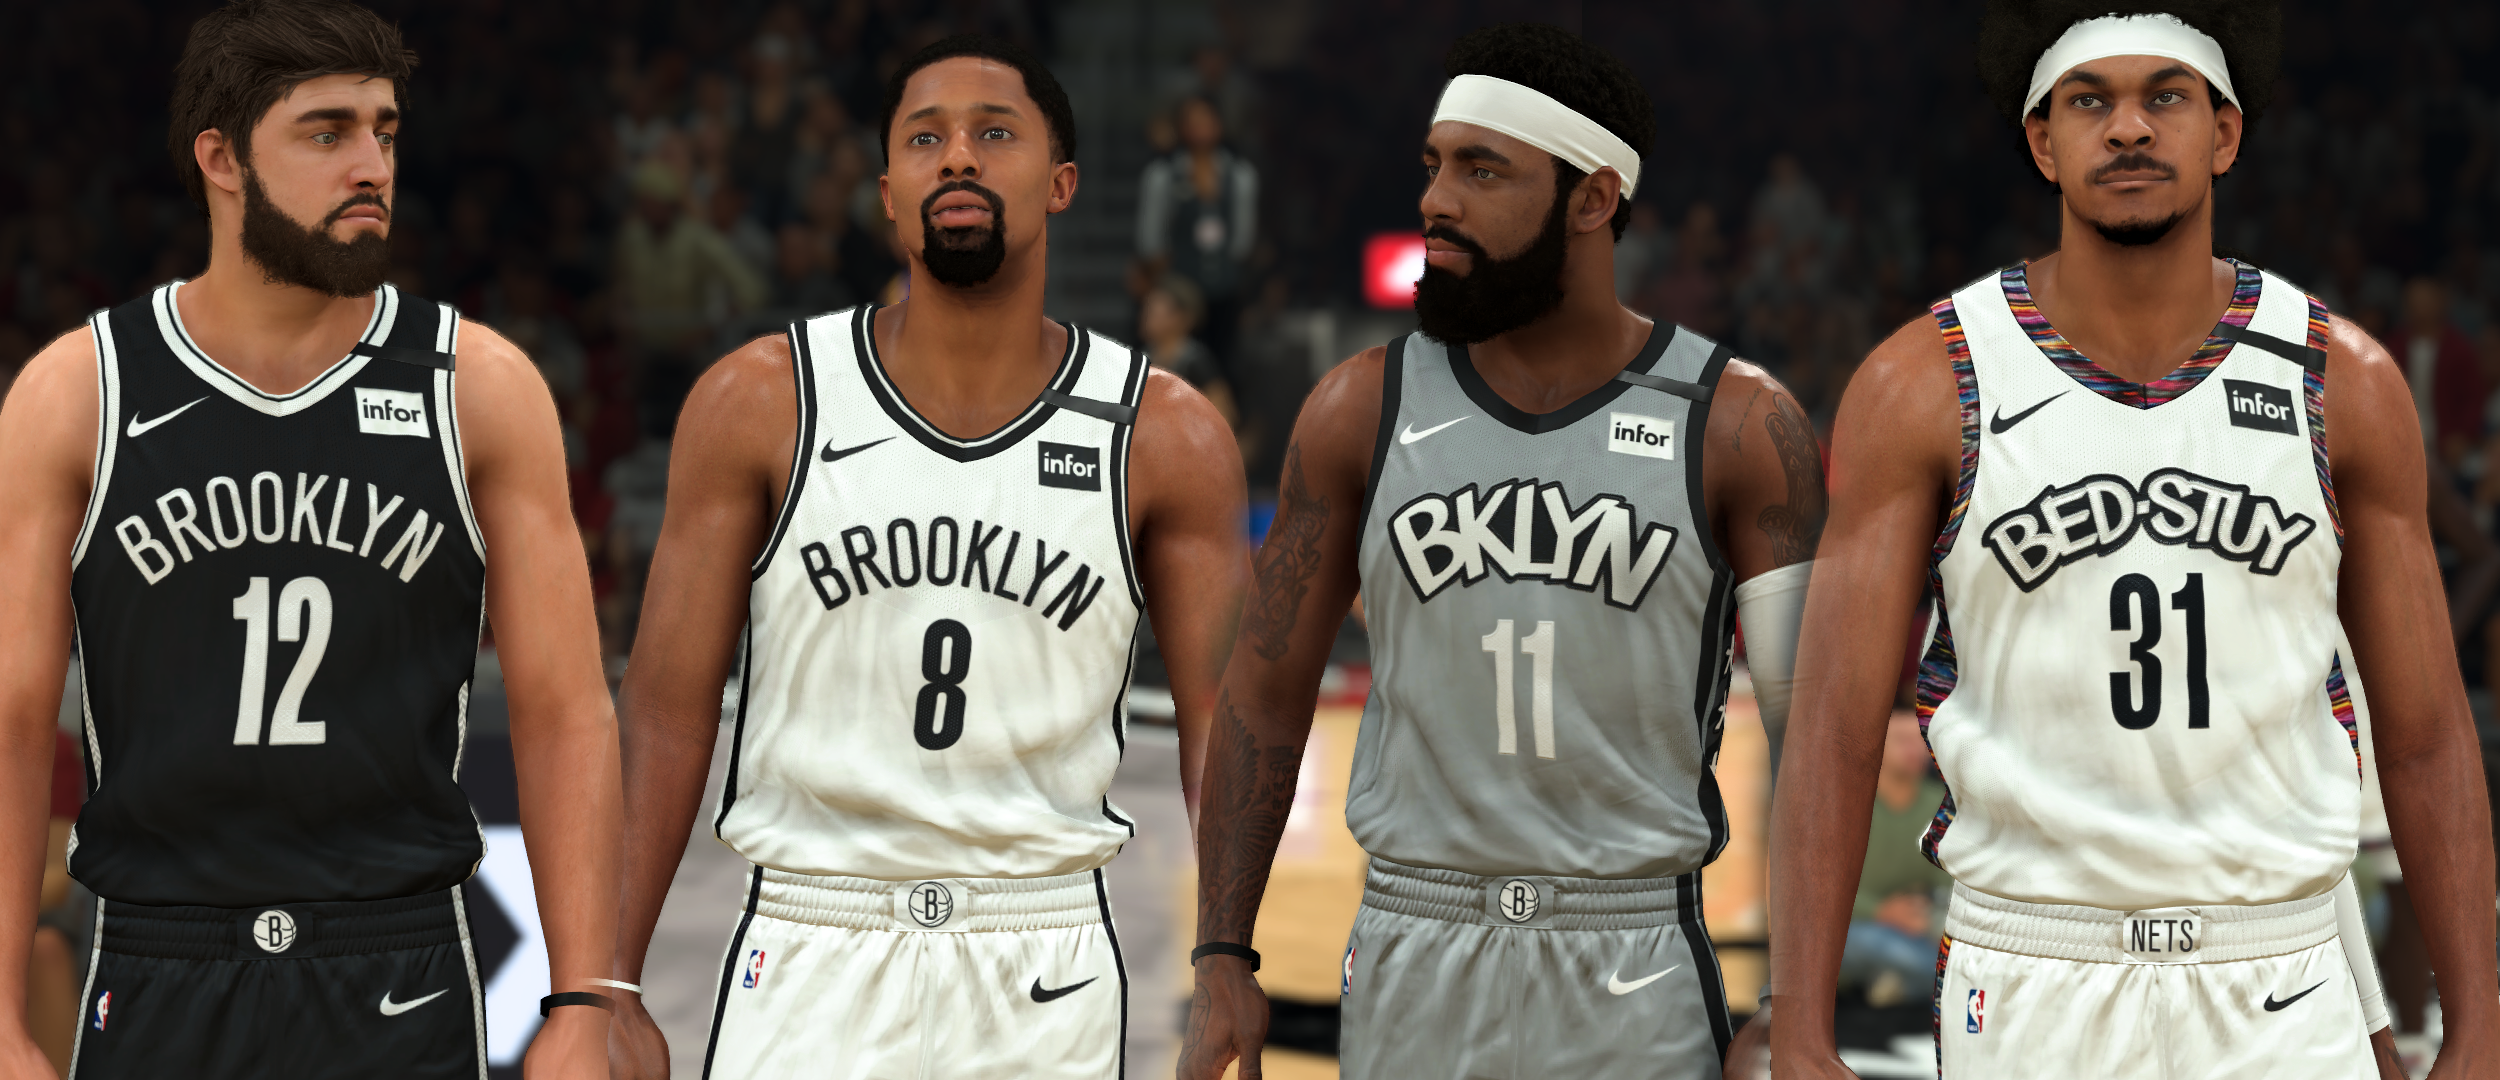 Brooklyn Nets Jersey (pinoy21)